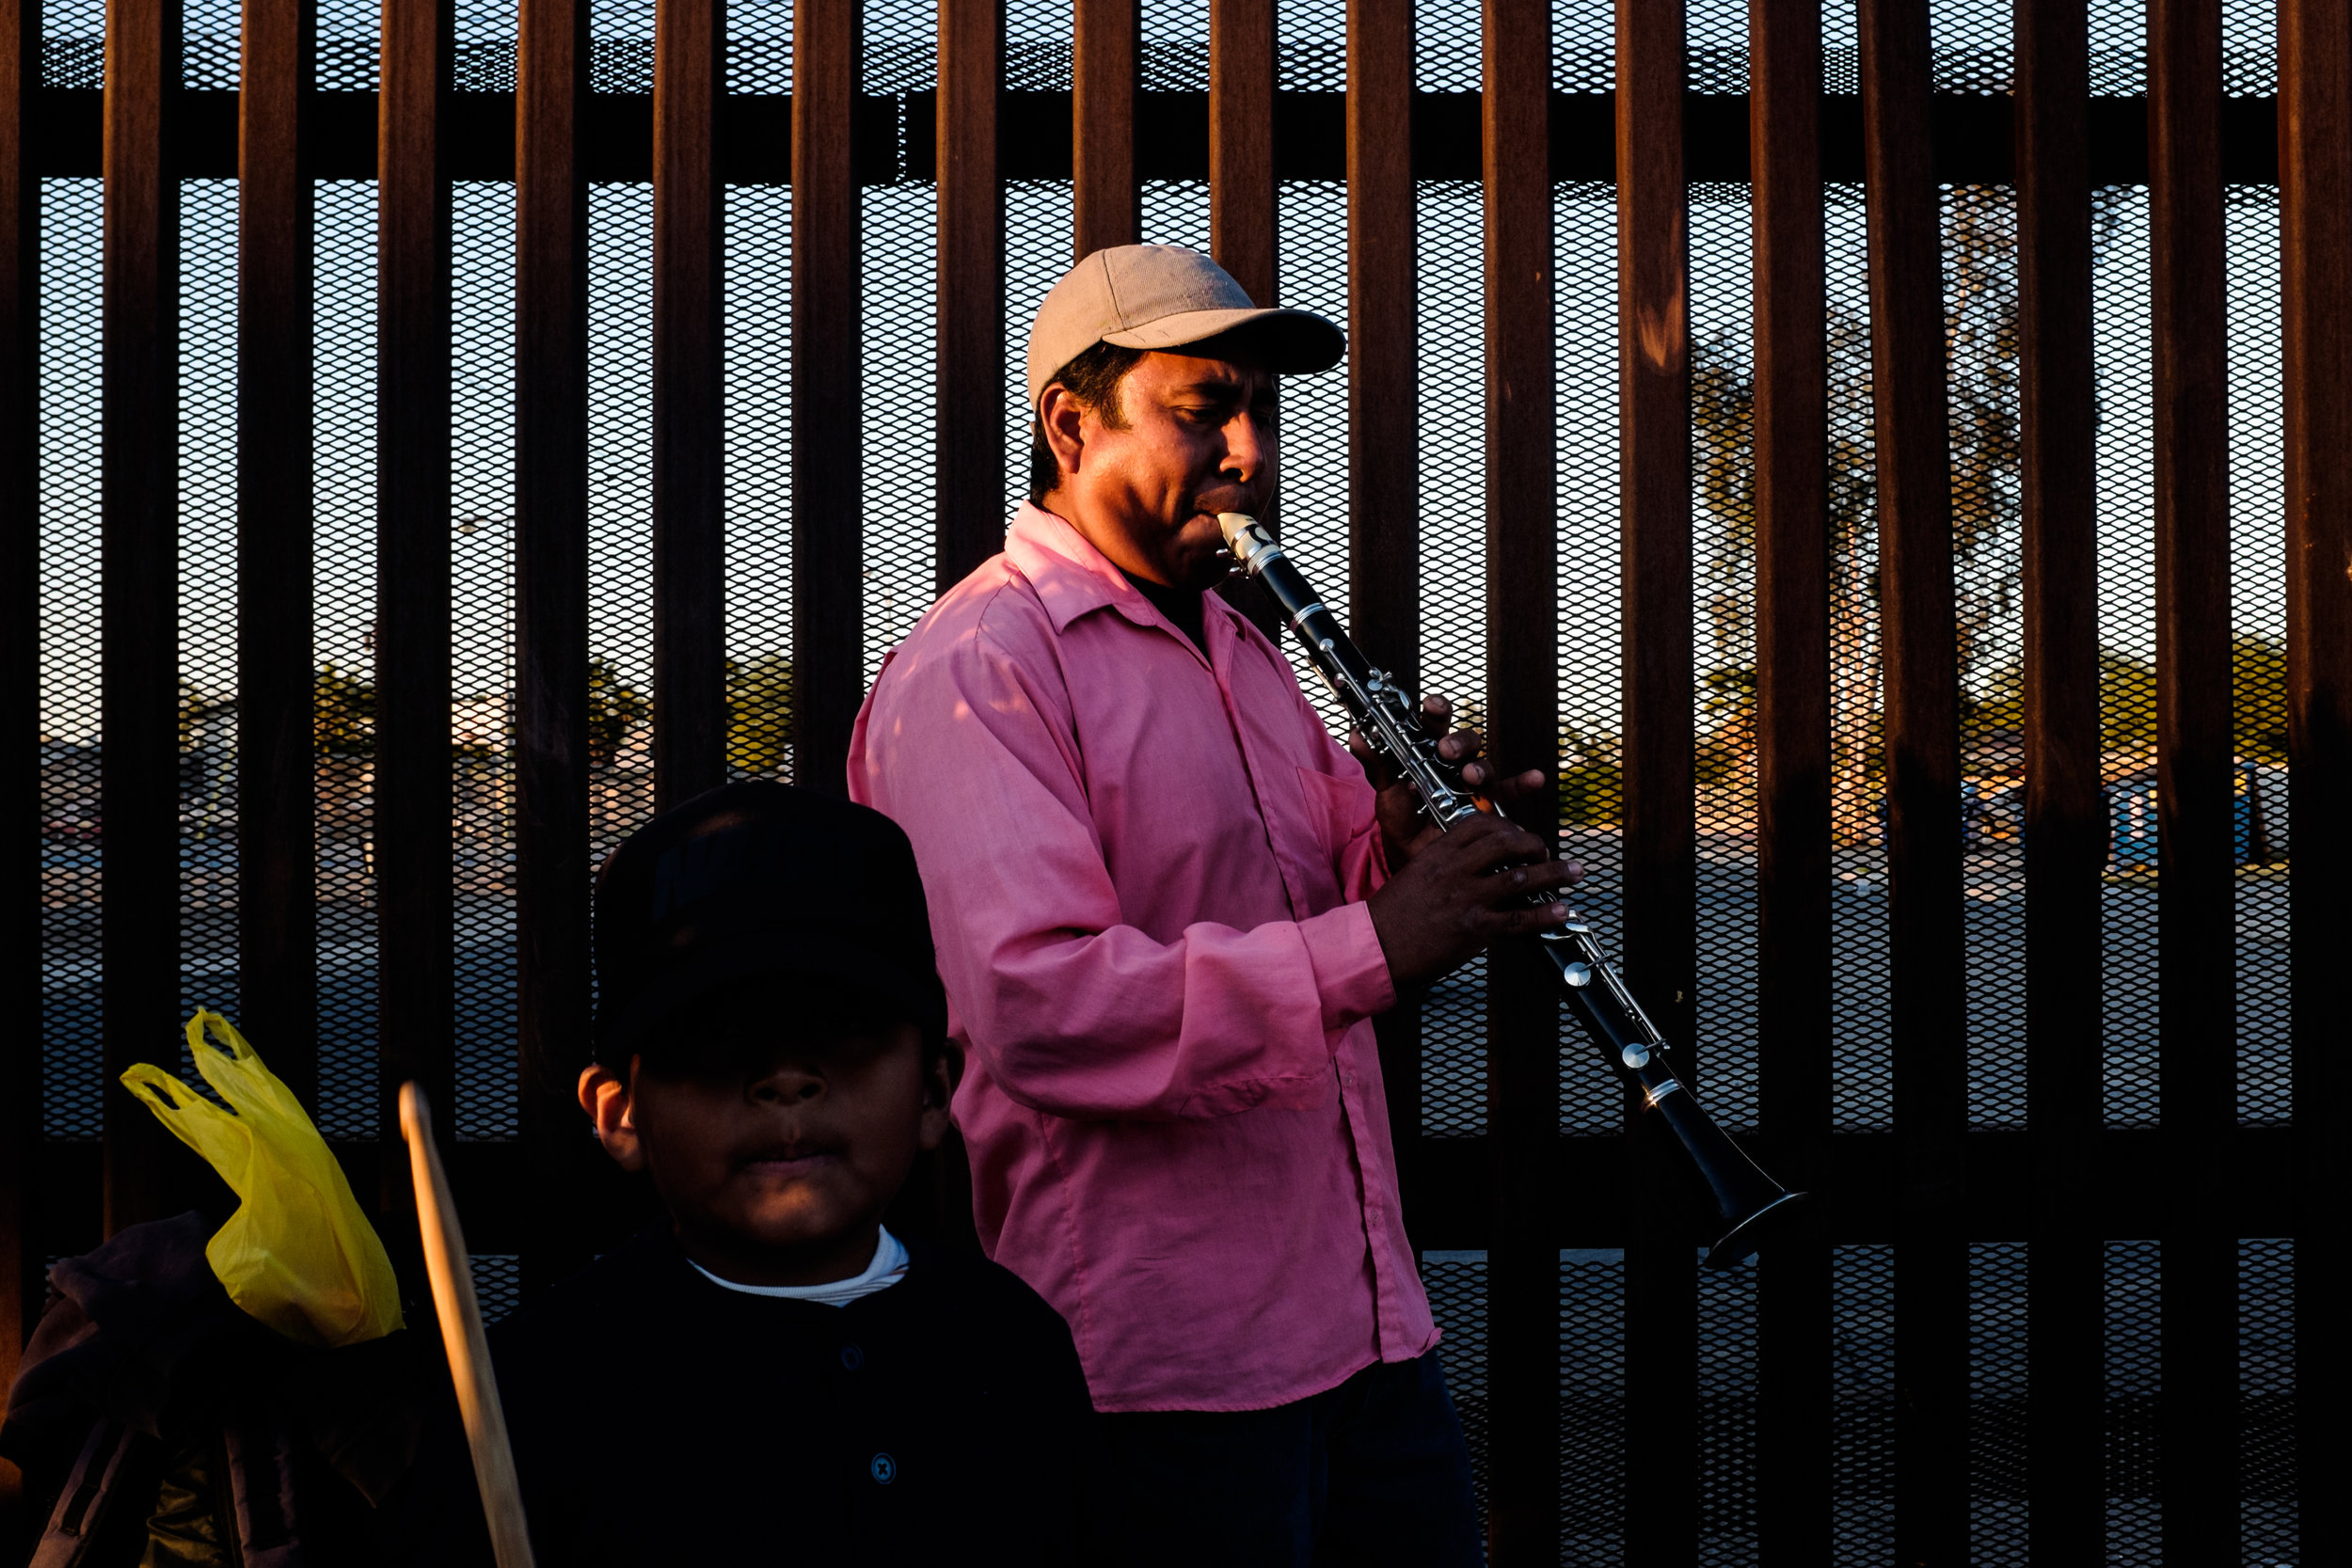 A musician performs for cars waiting on line to cross into the US from Mexicali, Mexico